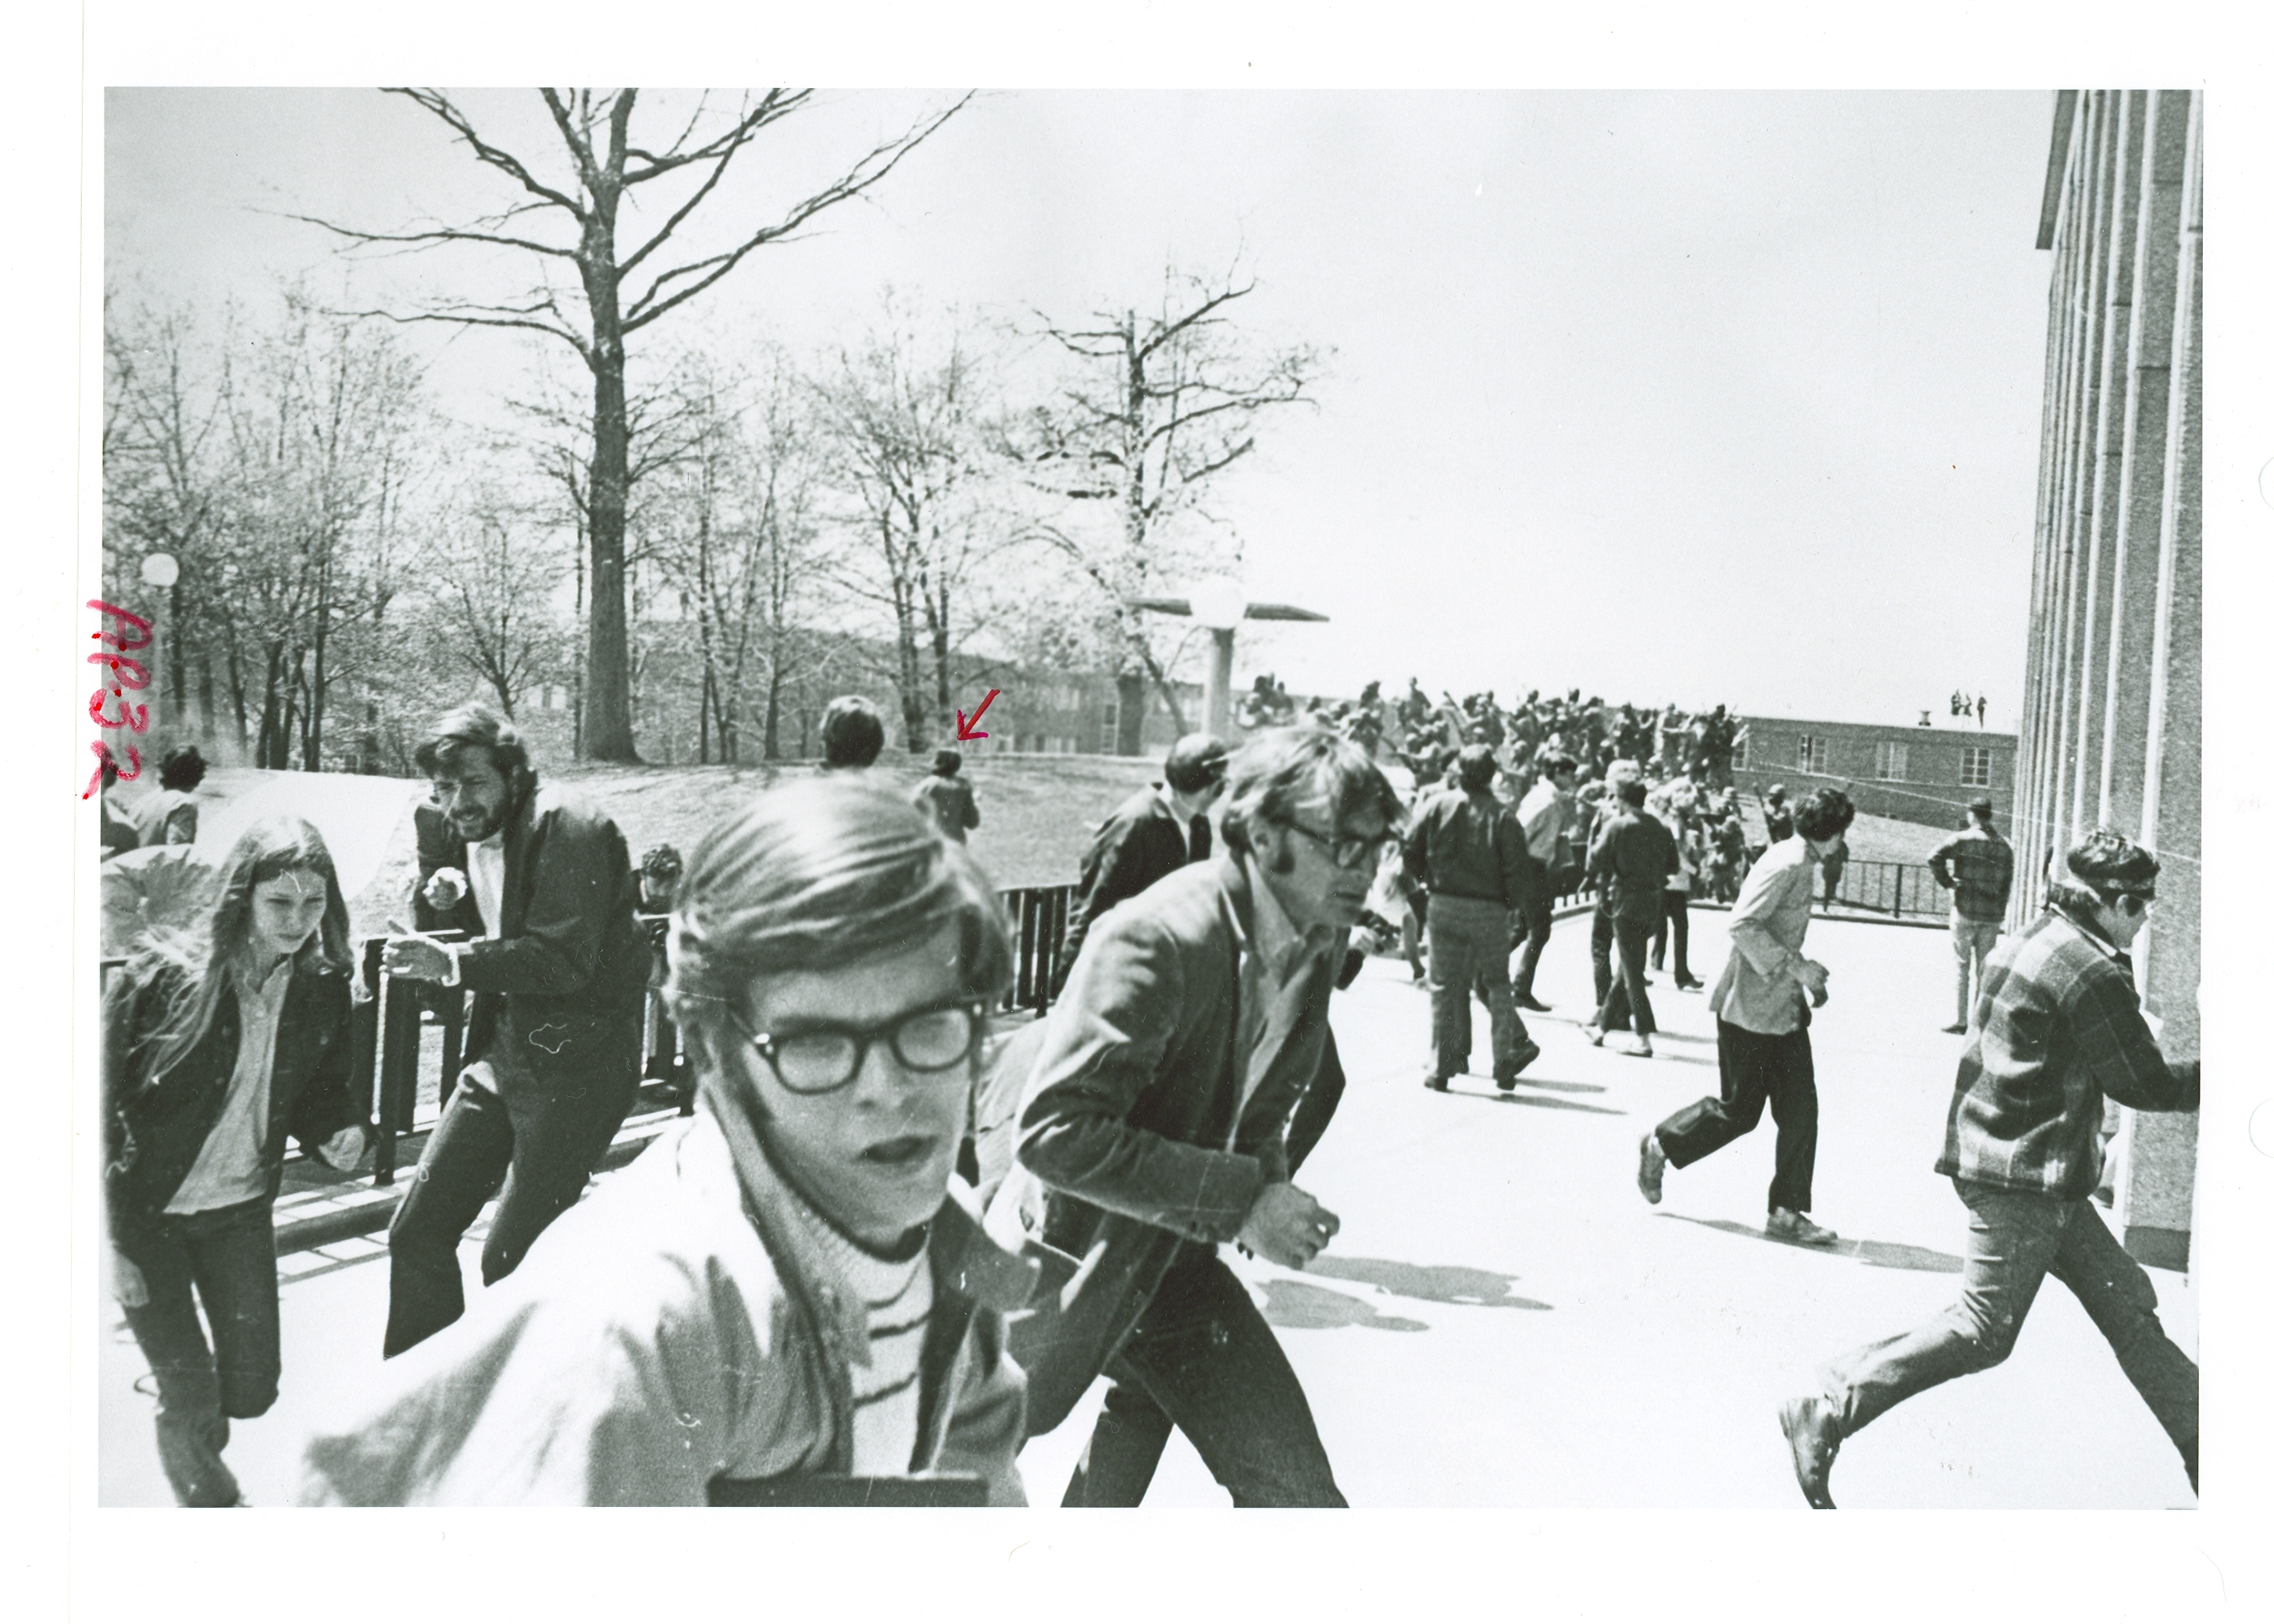 "Students run from gunfire that would kill four of their classmates at Kent State University in Ohio on May 4, 1970. President Nixon's Commission on Campus Unrest concluded ""the indiscriminate firing of rifles into a crowd of students and the deaths that followed were unnecessary, unwarranted and inexcusable."" A federal grand jury indicted eight National Guardsmen but found they were not subject to criminal prosecution because they acted in self-defense. (National Archives/Kent State investigation/Justice Department)"